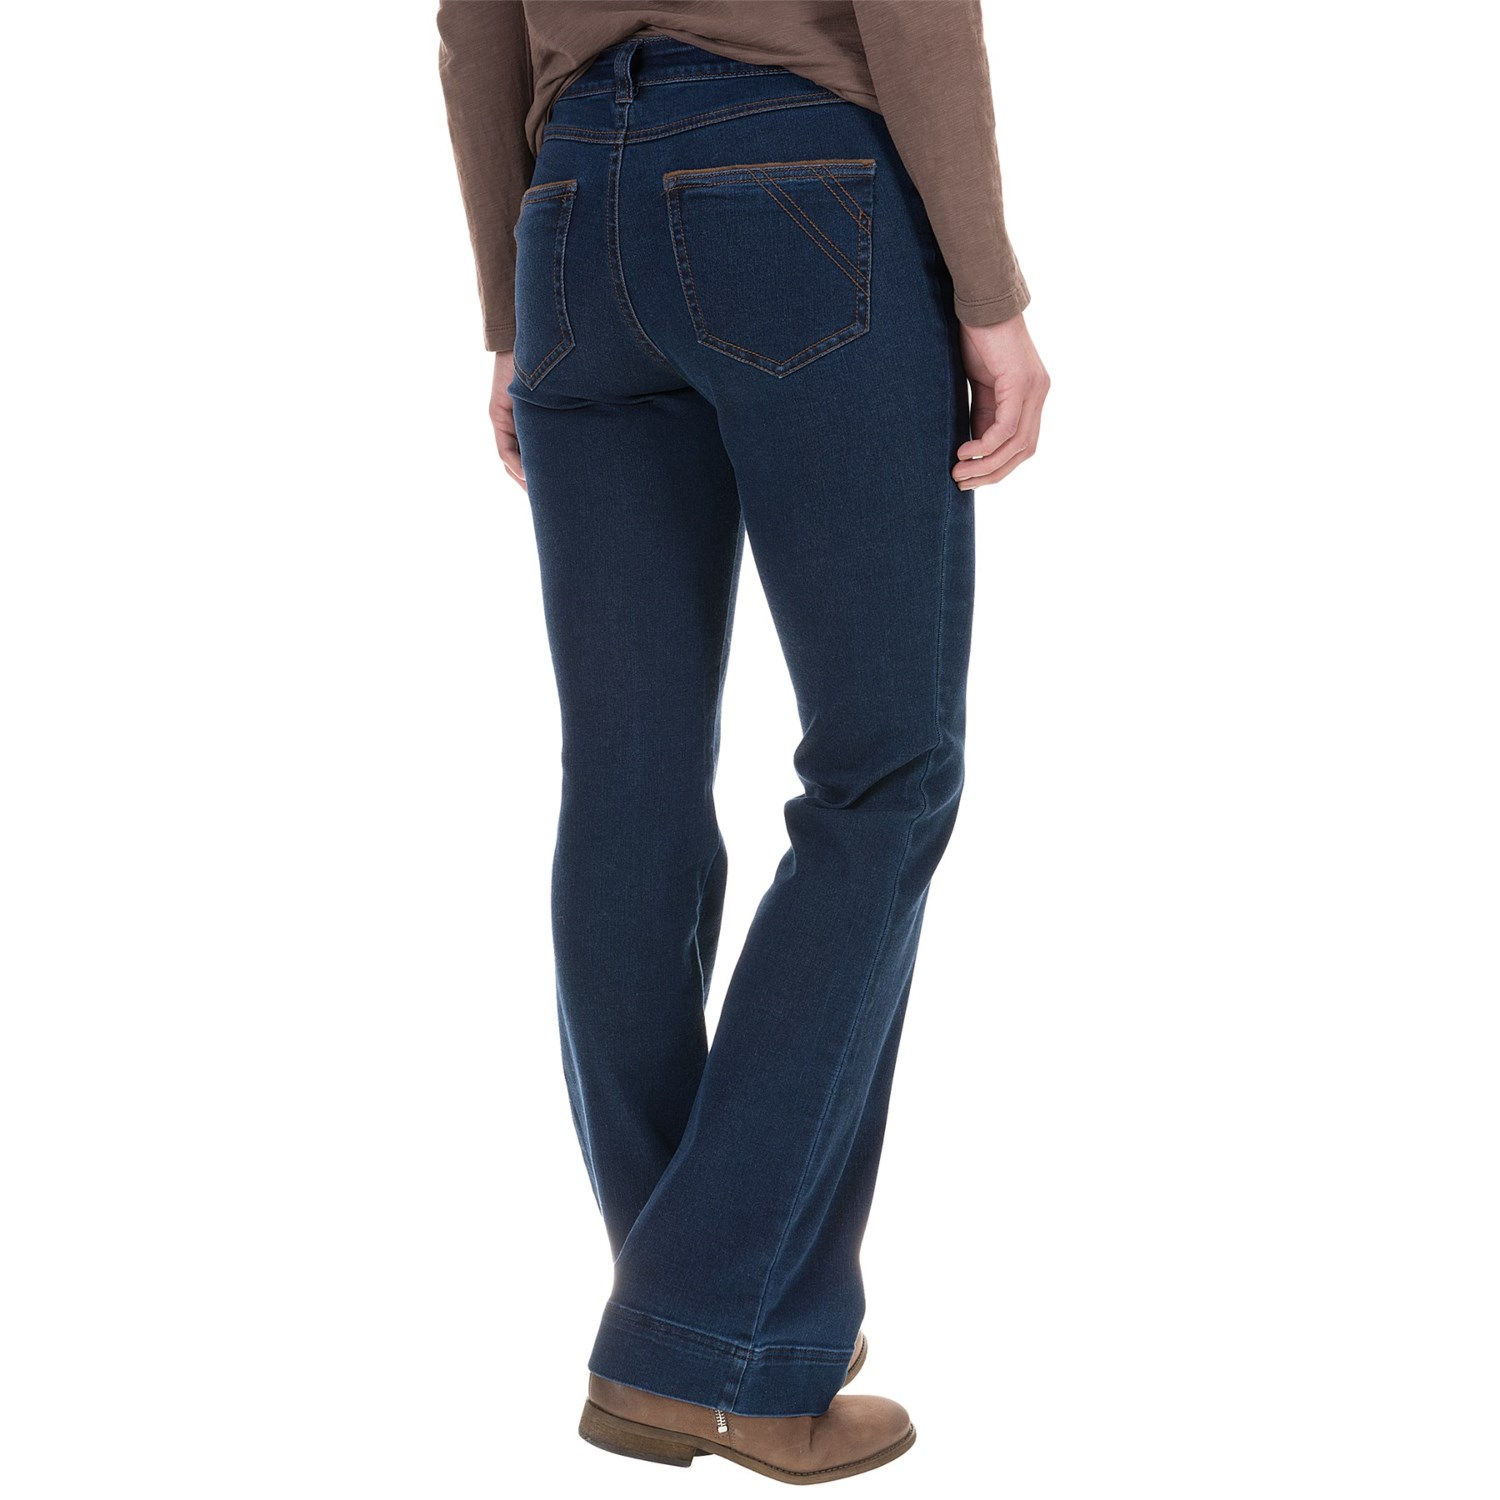 A Levi's® evolving classic jean since the 's, women's bootcut jeans support the knee and flare at the ankle. Available for ladies in black, grey and blue colors.